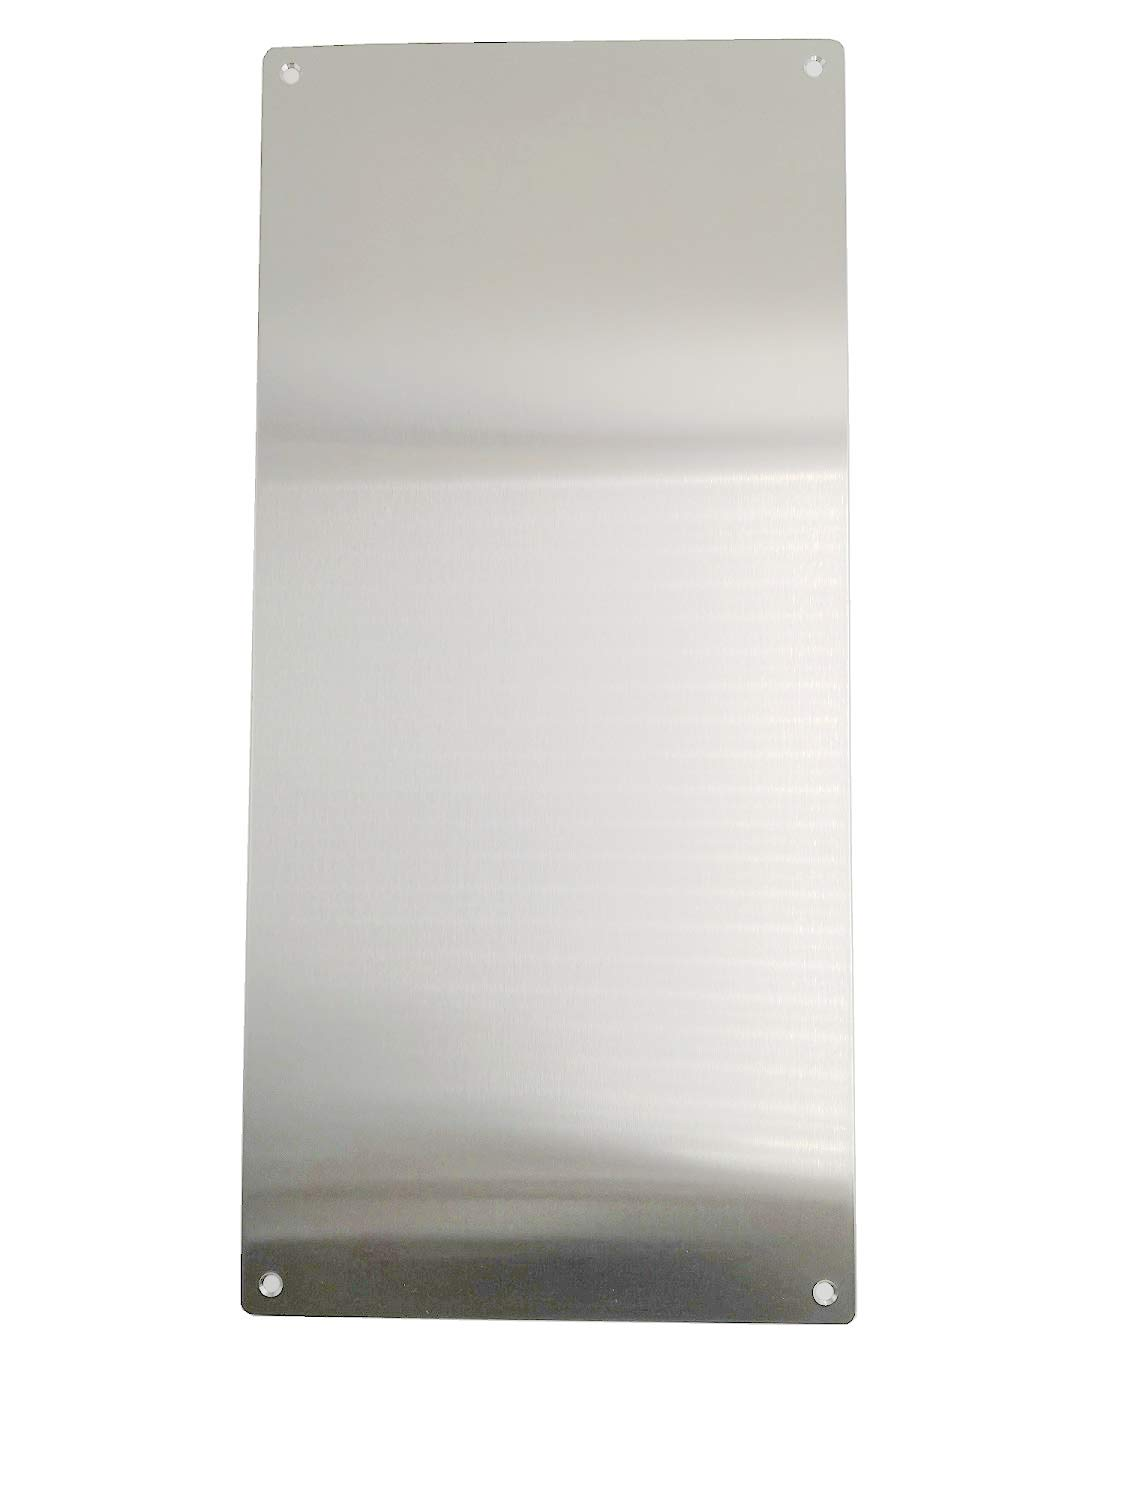 Promotion! VRSS Pack of 2 Satin Finish 304 Stainless Steel Kick Plate 200mm Height x 430mm Width 1.2mm Thick, 2 Pack by VRSS (Image #1)